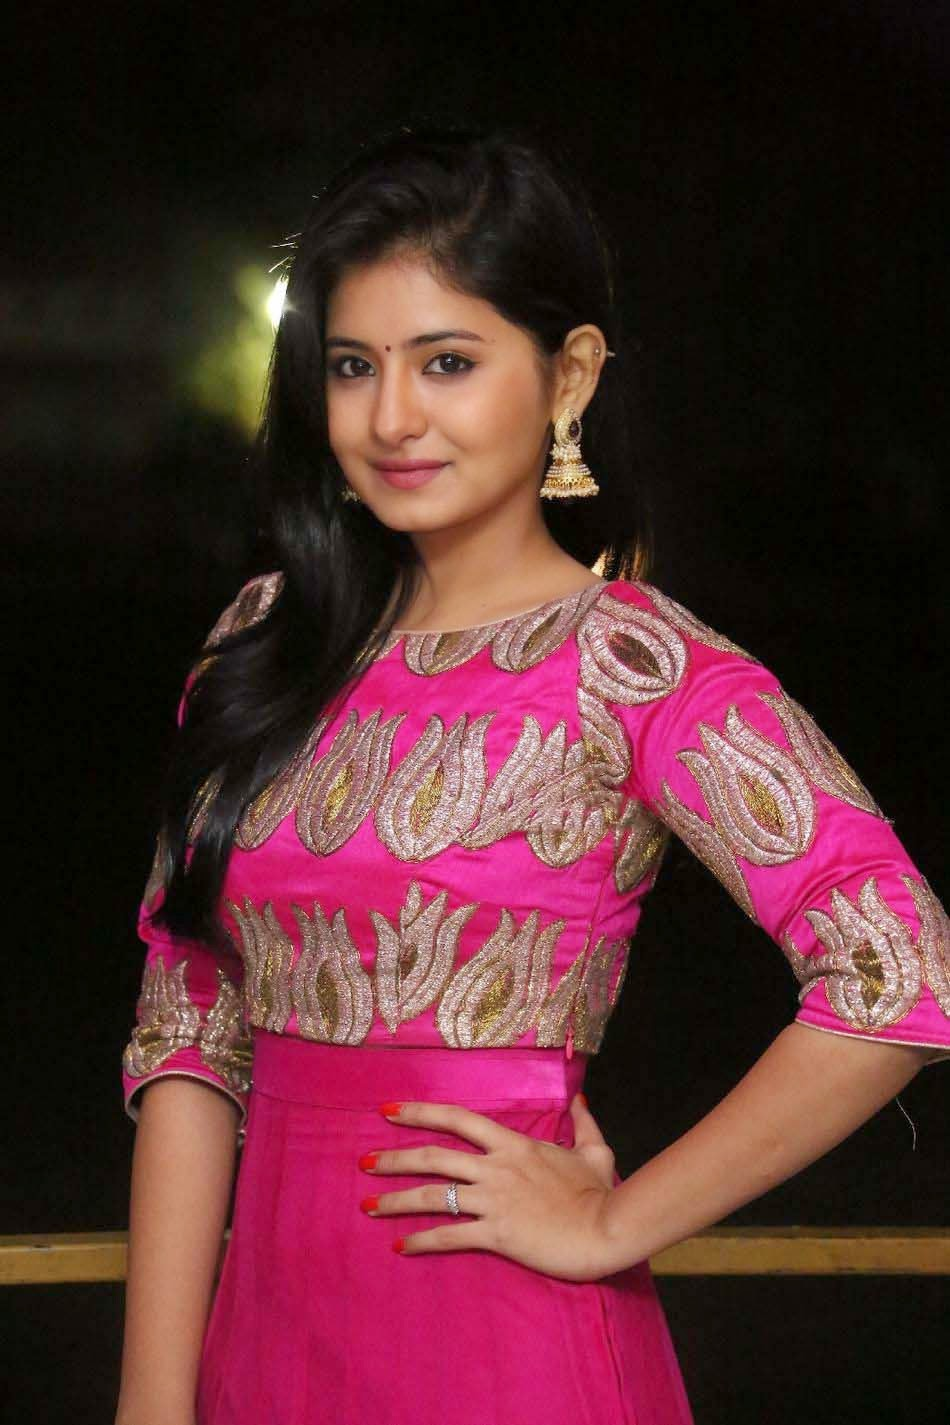 Actress Reshmi Menon Hd Image From Hyderabad Love Story -3559